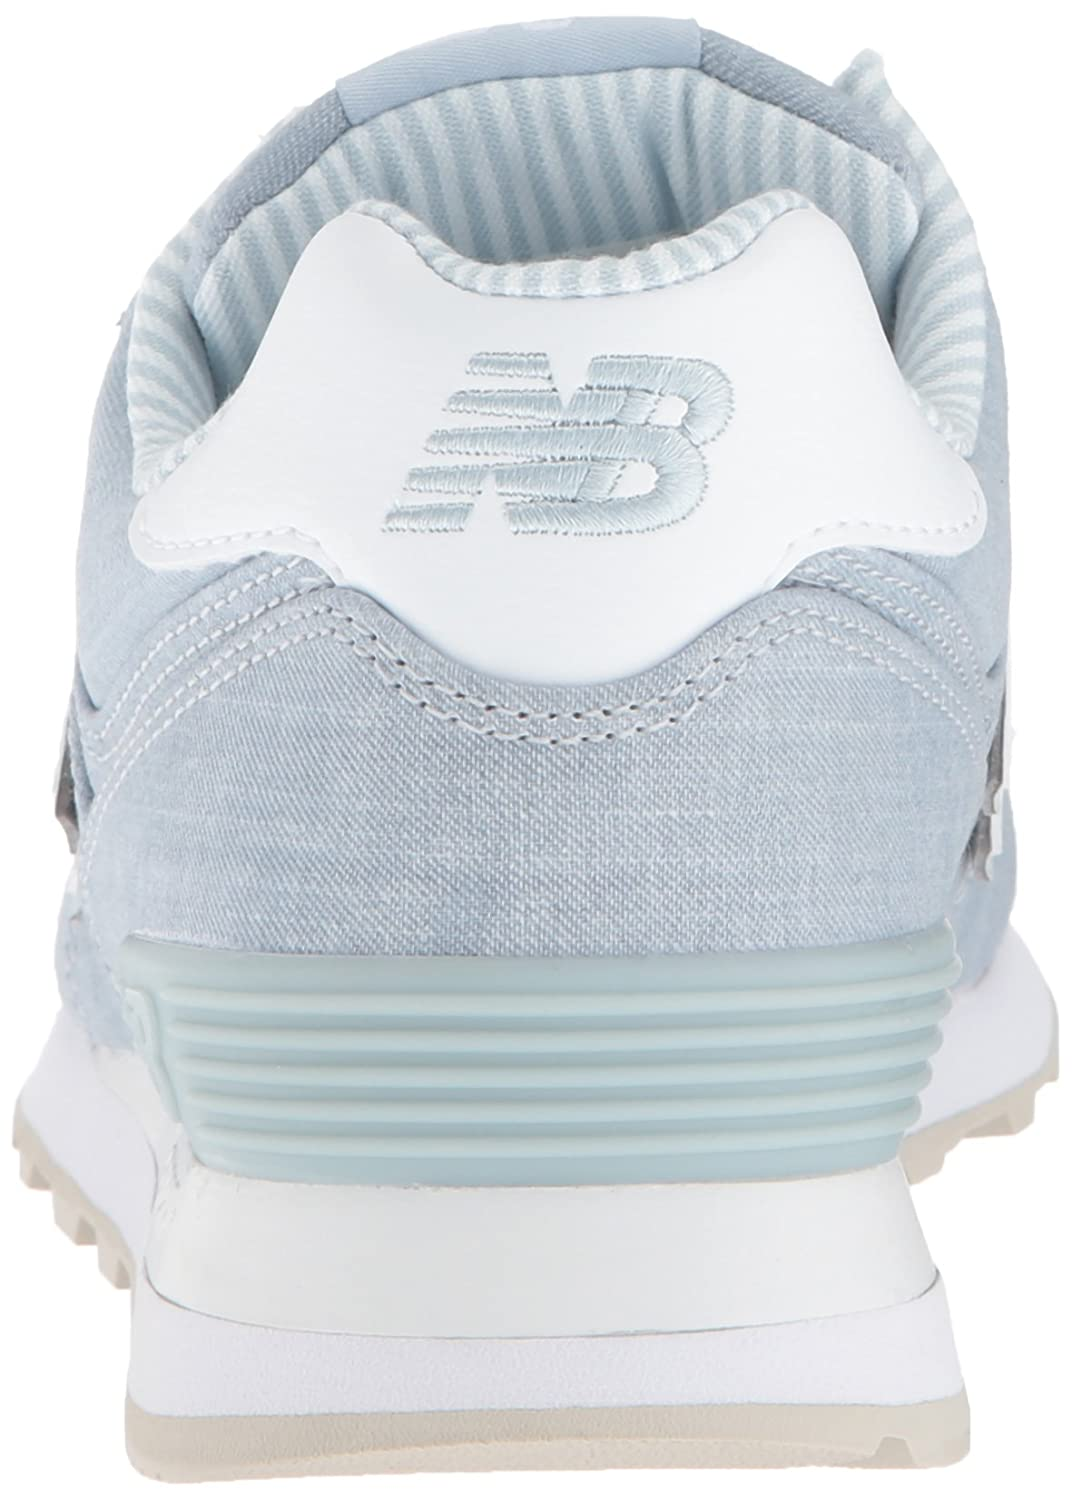 New Balance Women's 574v2 Sneaker B0751PSV38 10.5 D US|Light Porcelain Blue/White